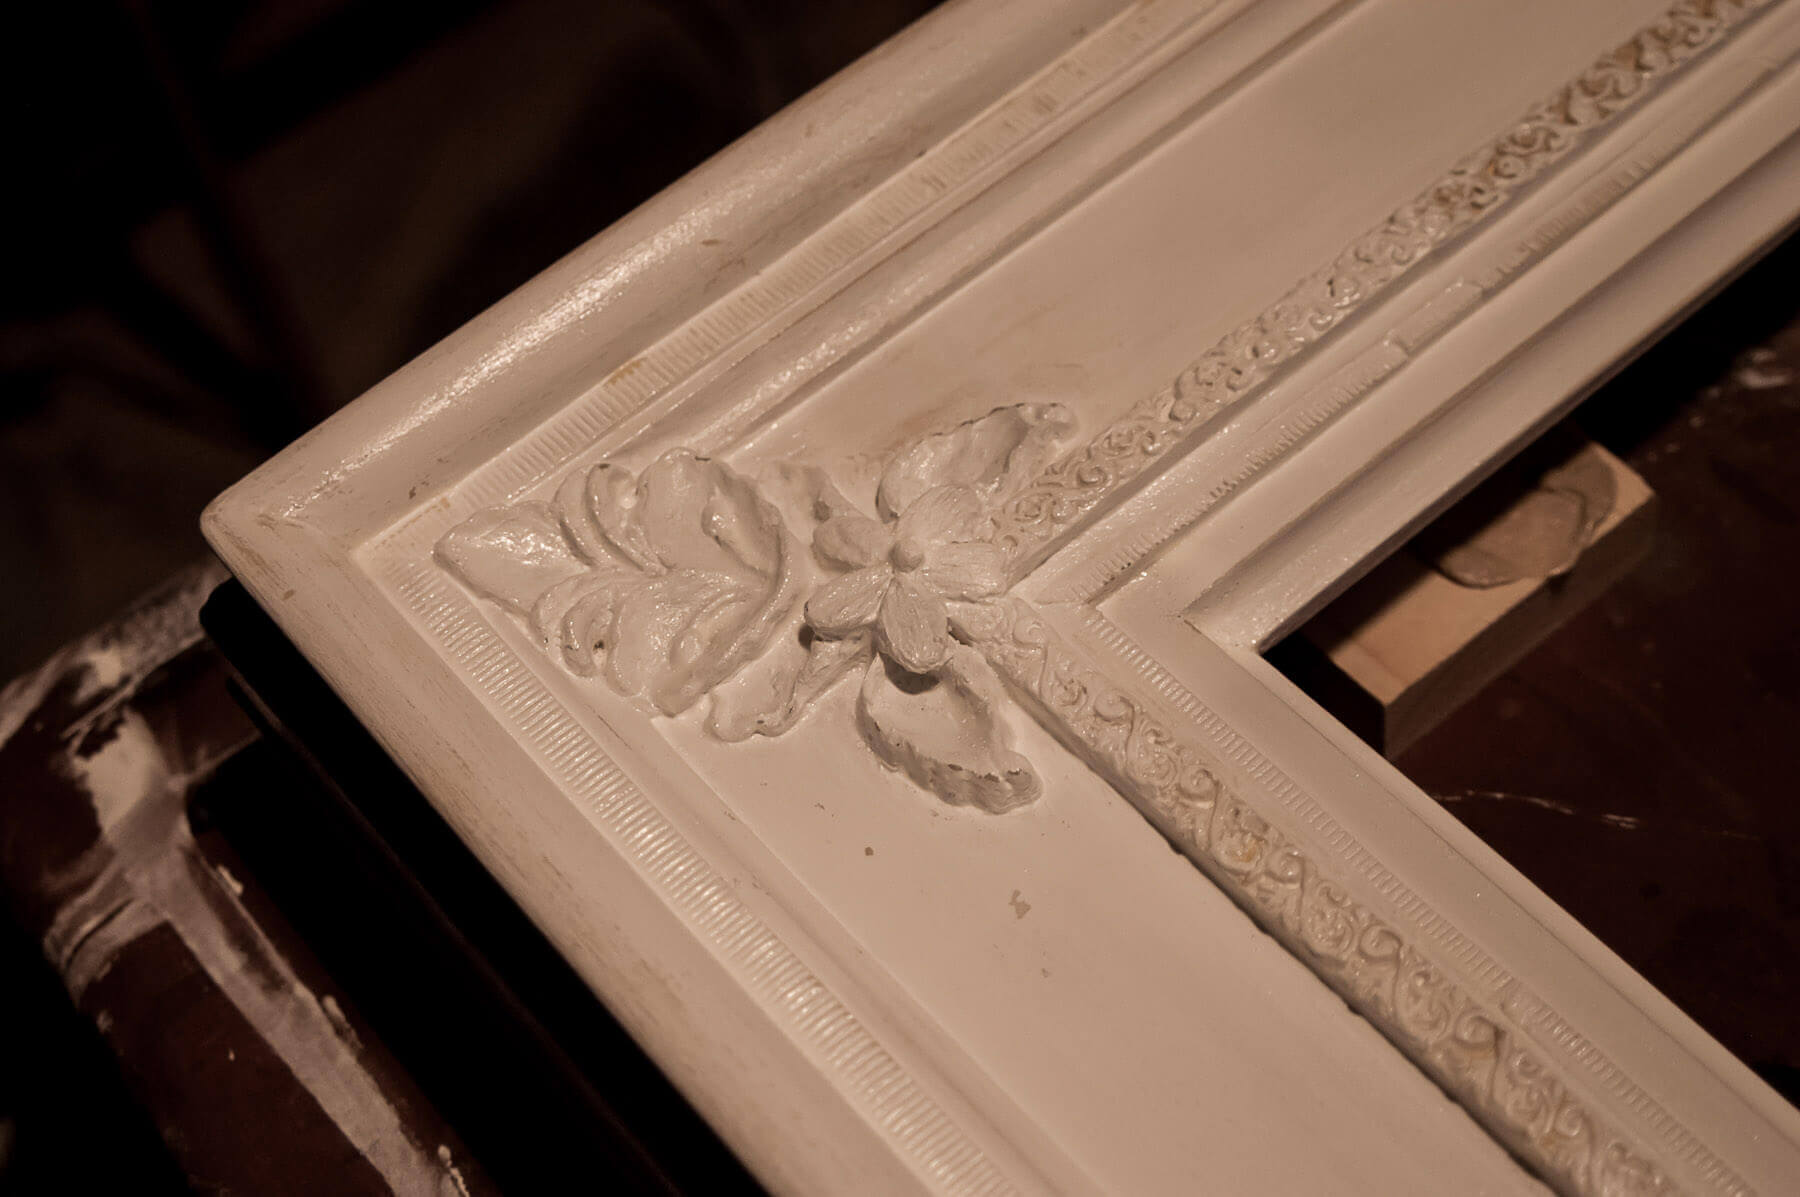 Assembly of the frame addresses structural soundness and durability as well as the aesthetic quality...